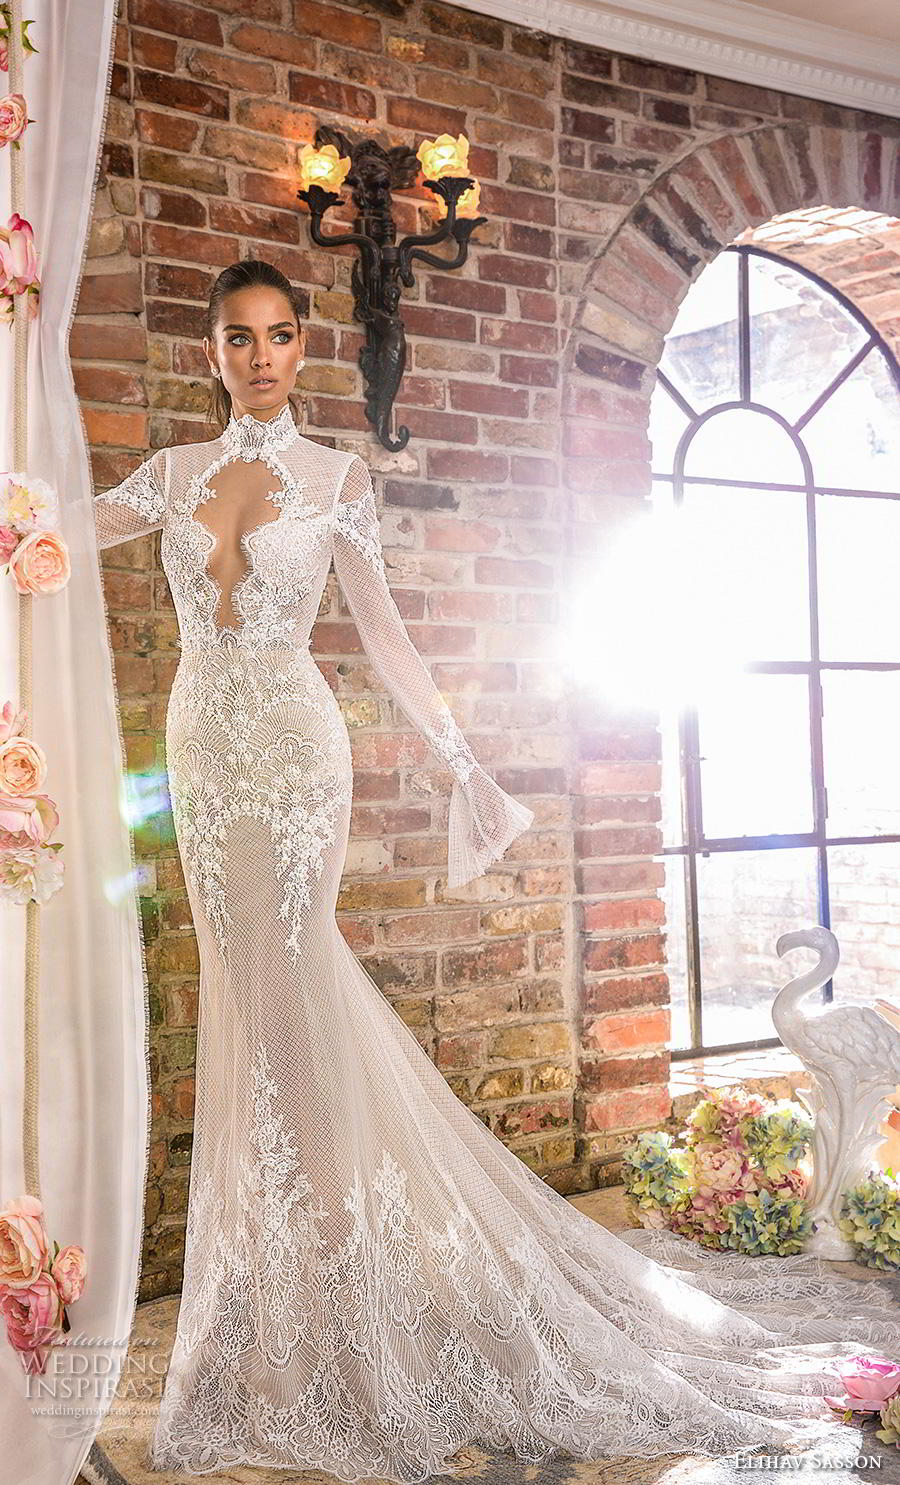 elihav sasson 2019 bridal long poet sleeves high neck keyhole bodice full embellishment elegant fit and flare wedding dress keyhole back chapel train (6) mv